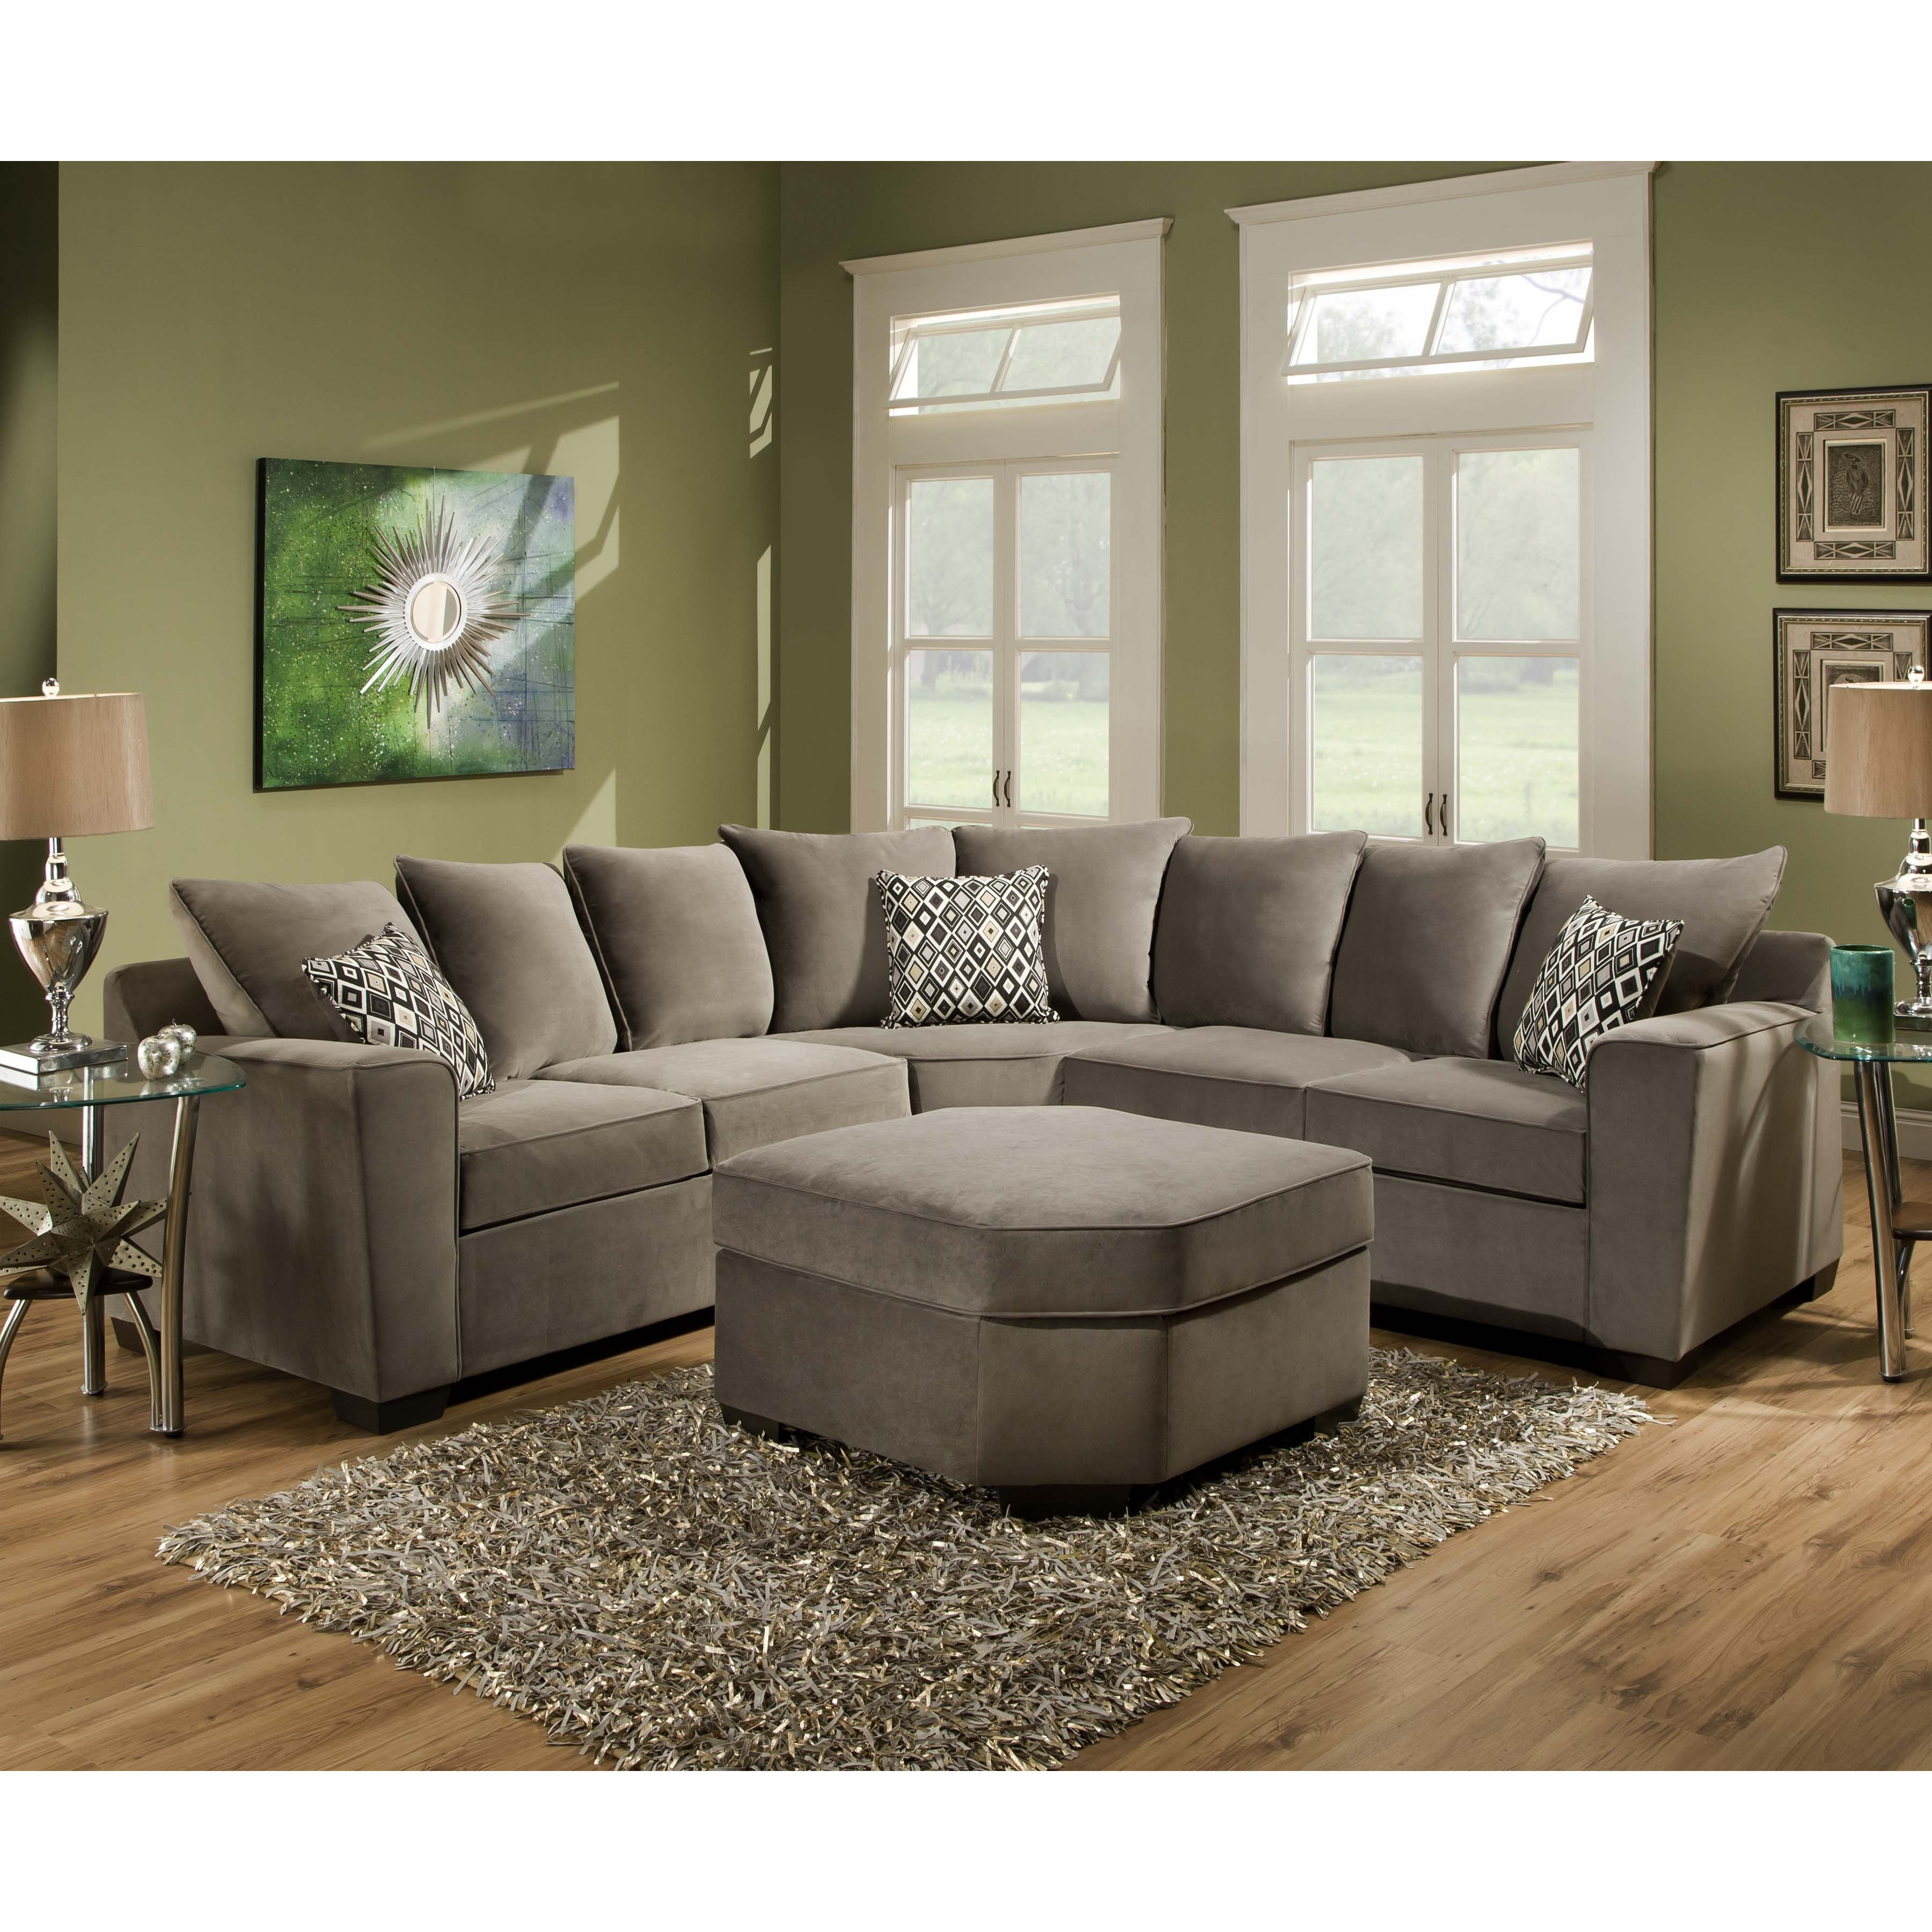 Simple American Made Sectional Sofas 65 With Additional Compact Regarding Compact Sectional Sofas (#10 of 12)